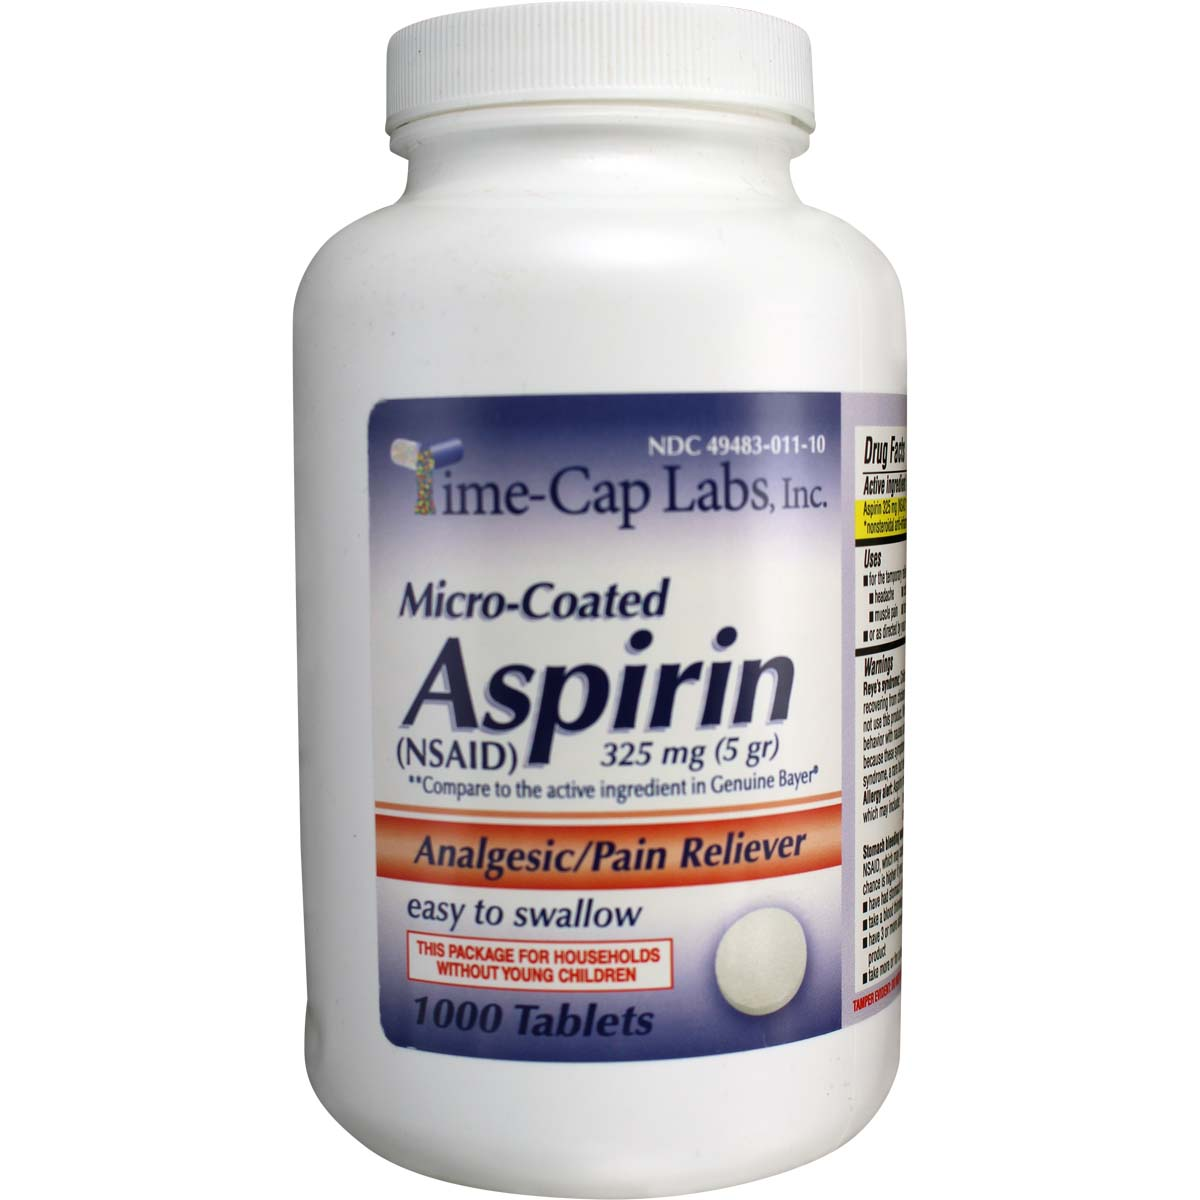 lab on aspirin tablets Acetylsalicylic acid in pain reliever tablets match the amount given by the manufacturer the purpose of this experiment is to determine the mass of acetylsalicylic acid in a commercial aspirin tablet because drug manufacturing is overseen by the food and drug administration in the united states, it is hypothesized that the.